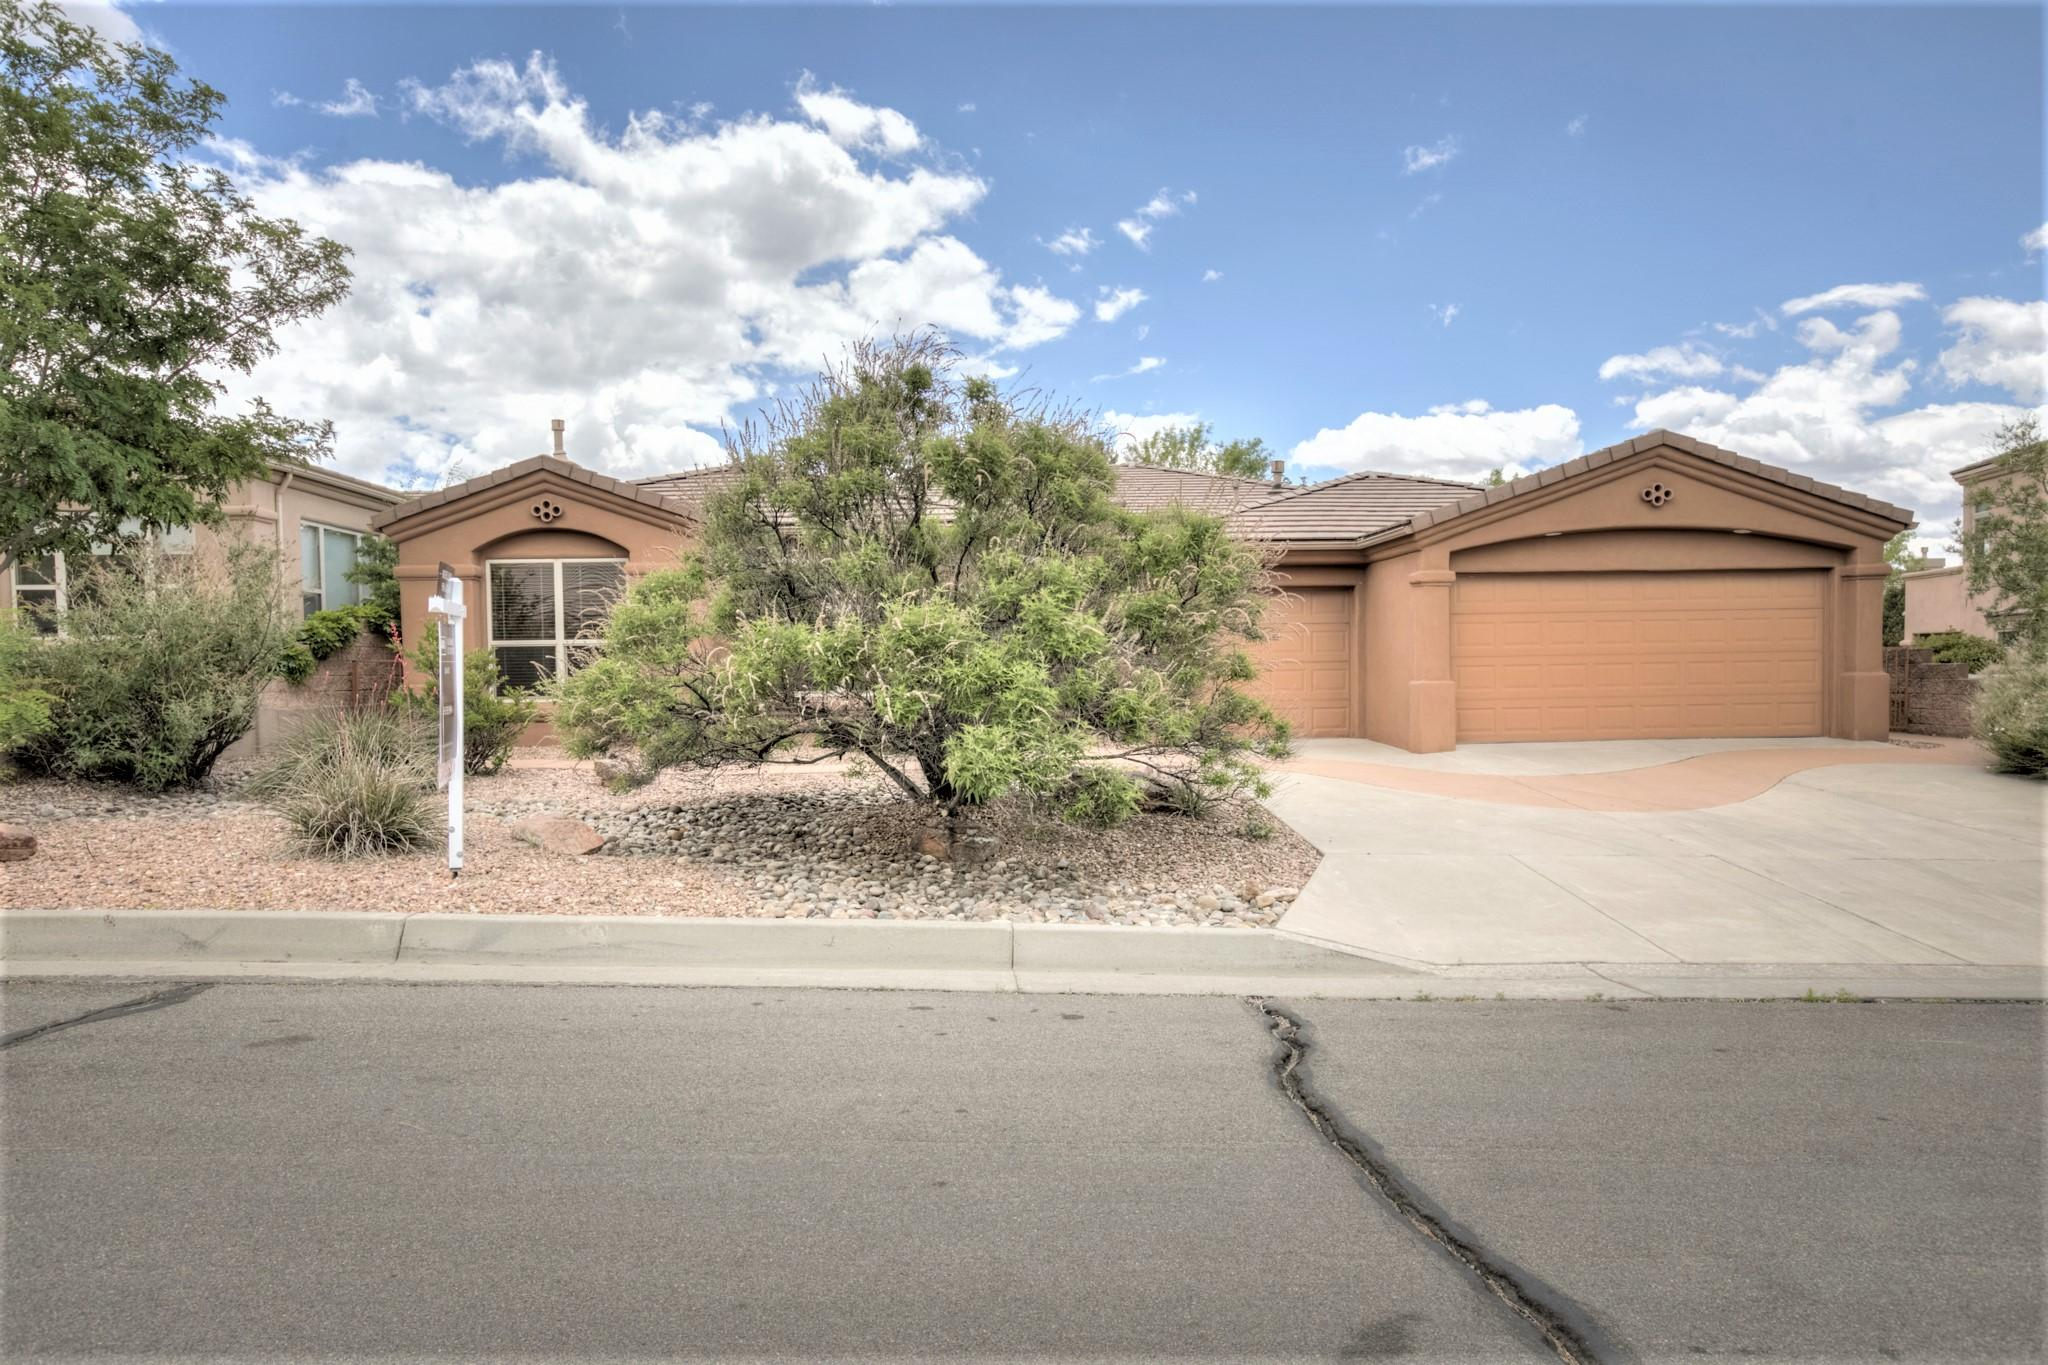 12905 DESERT MOON Place NE, Albuquerque, NM 87111 - Albuquerque, NM real estate listing